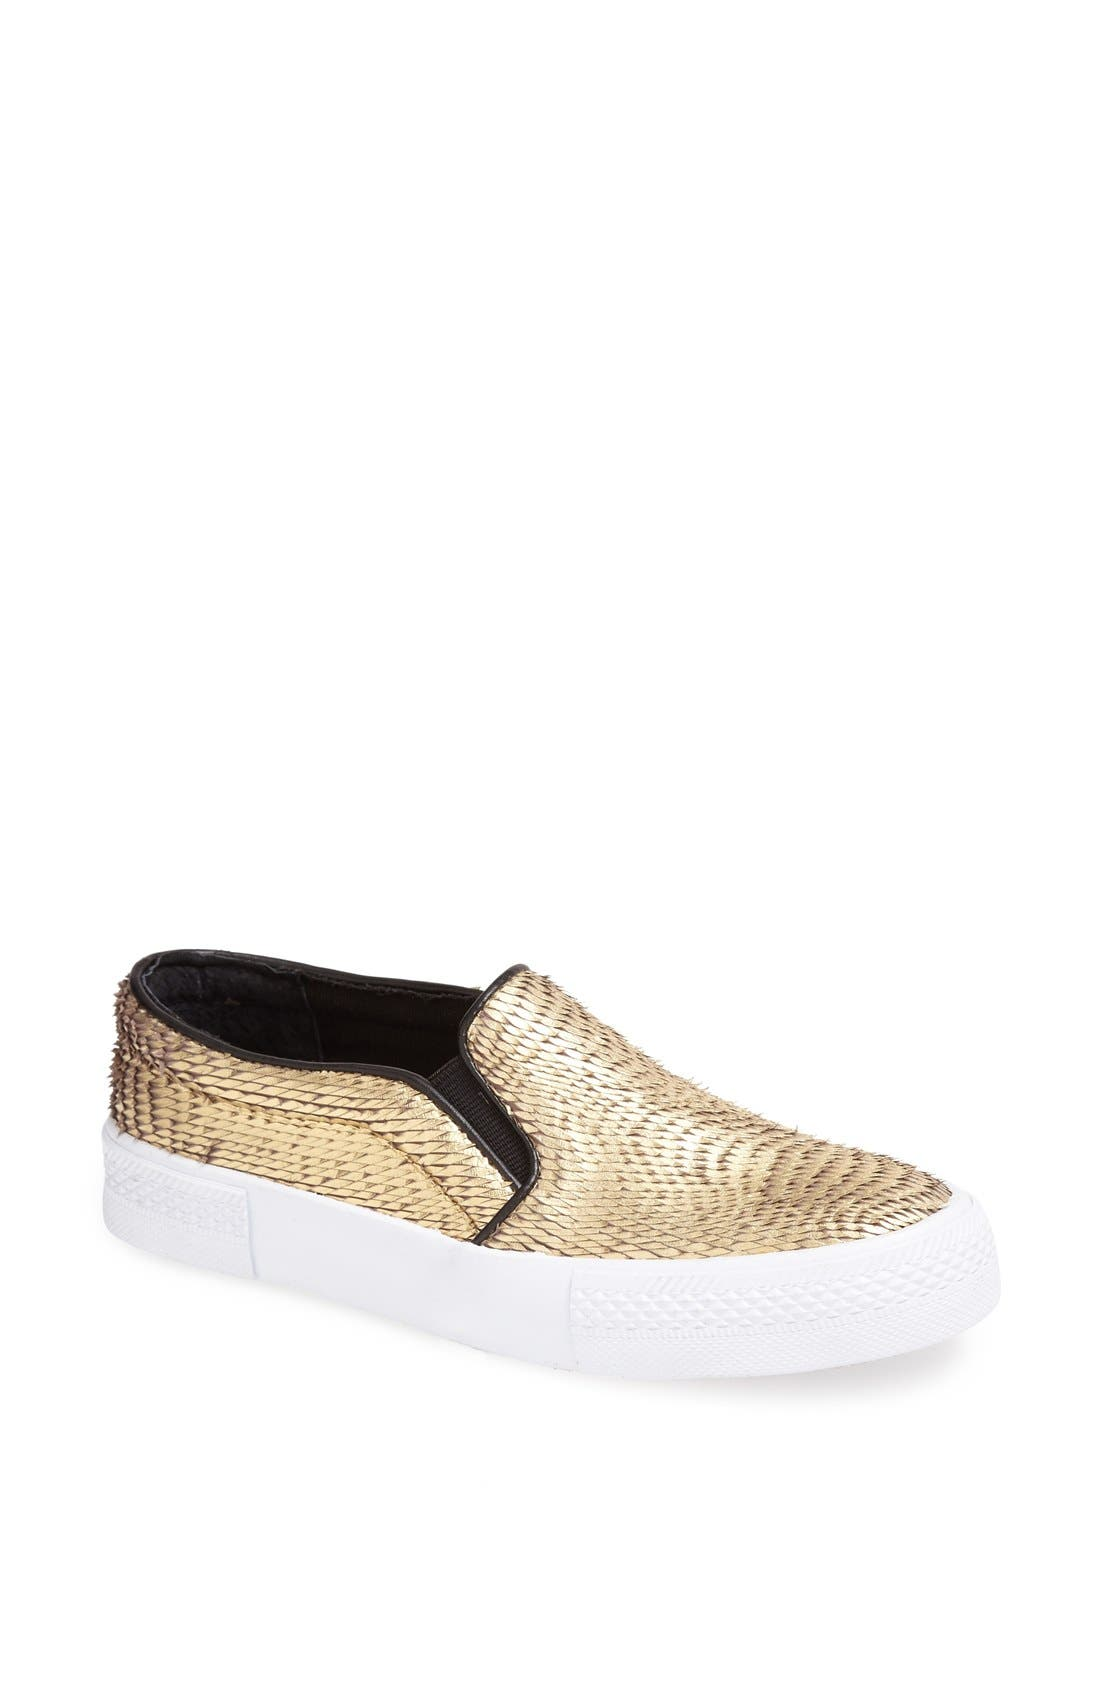 Main Image - The Blonde Salad x Steve Madden 'NYC' Sneaker